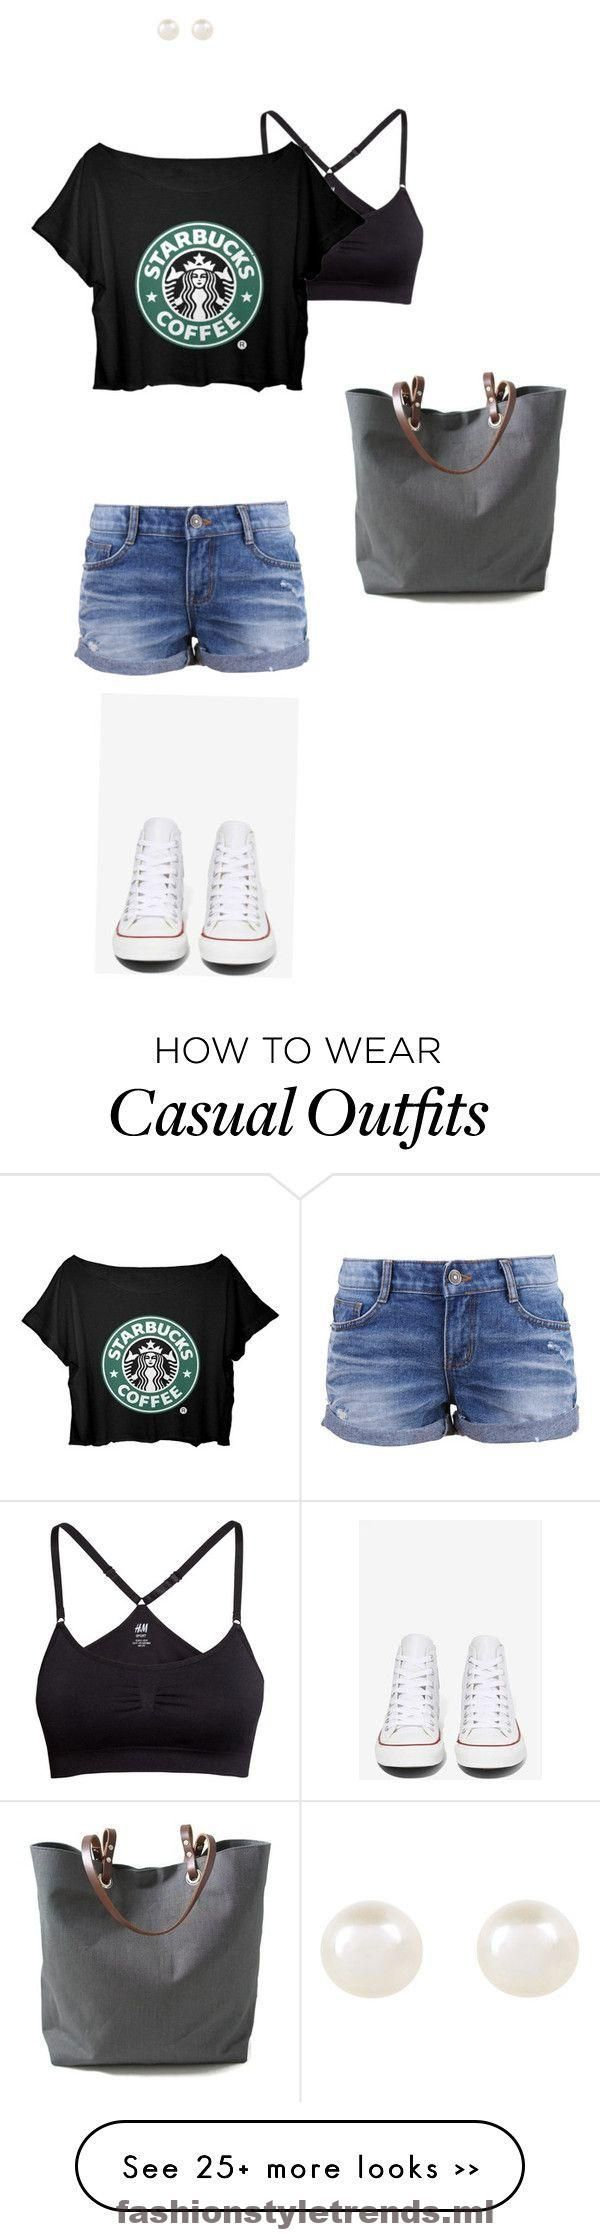 """Teenage casual"" von serenagaylord auf Polyvore, #casual #fashionteenage #polyvore #serenagaylord"